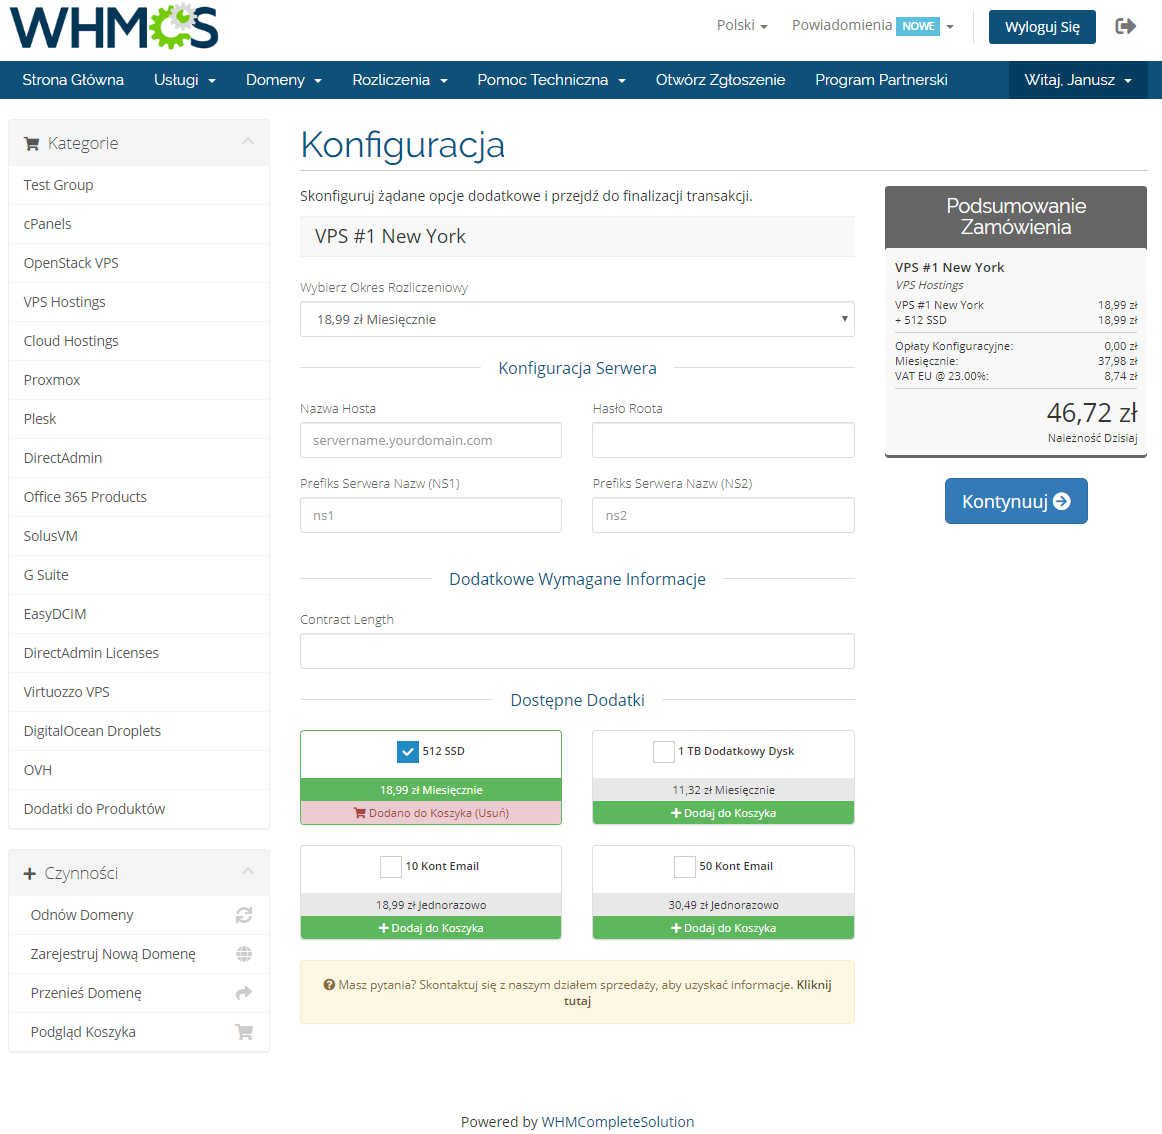 Polish Language Translation For WHMCS: Module Screenshot 9